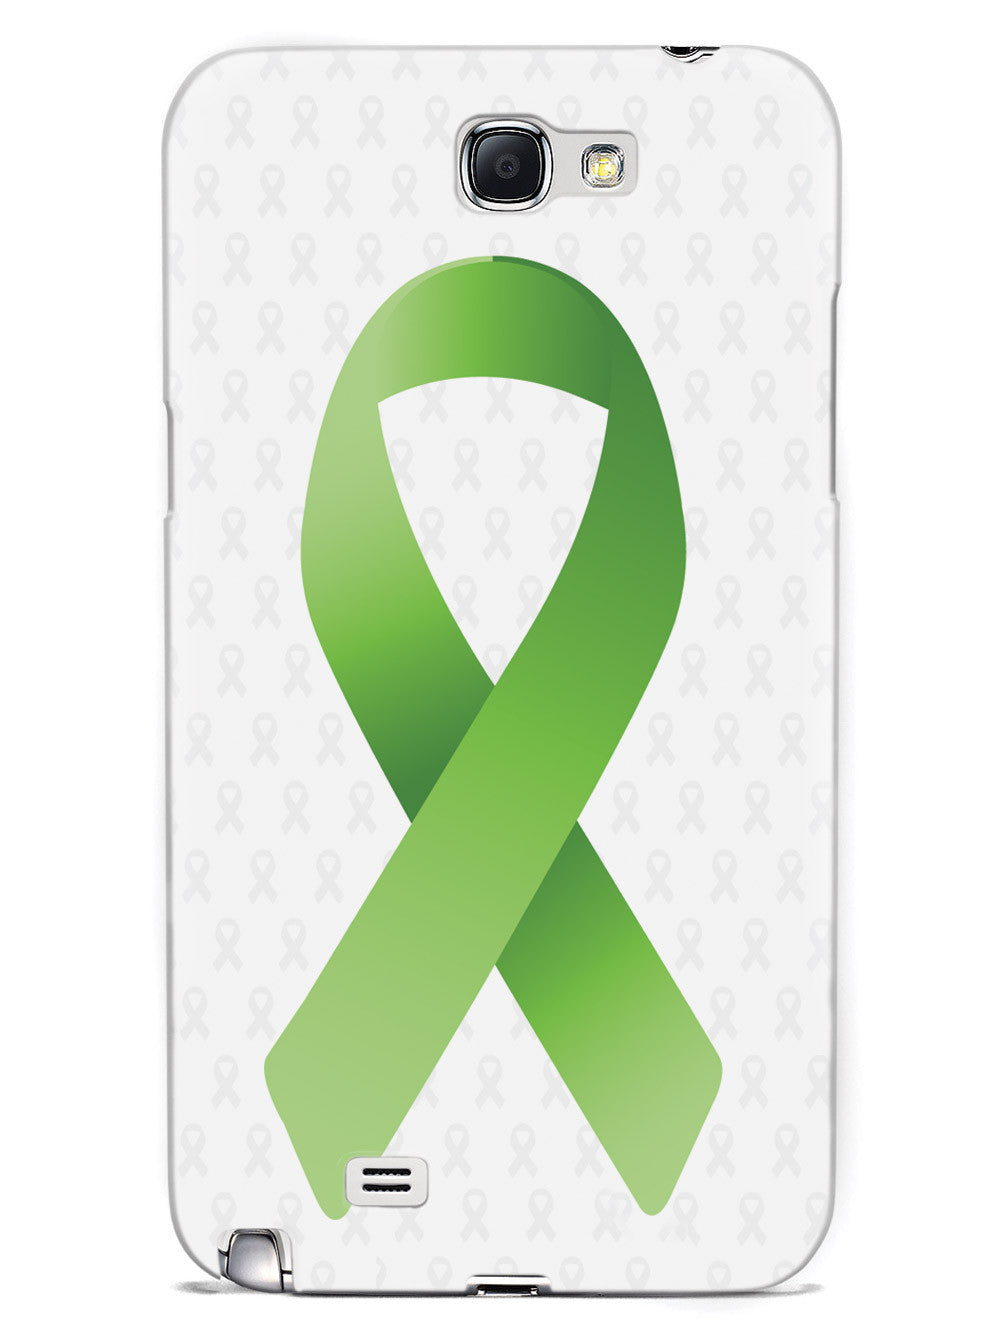 Non-Hodgkin's Lymphoma Awareness Ribbon - White Case